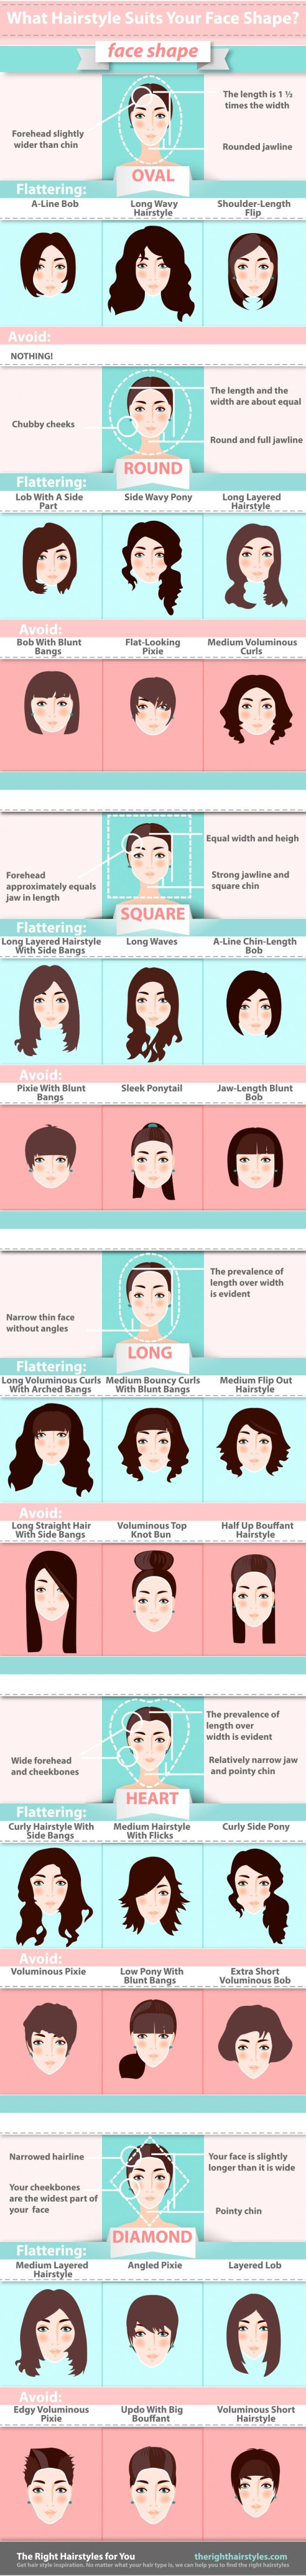 haircuts for certain face shapes top 25 ideas about oval hairstyles on 5415 | 9fbf08e0fceae26893b005e5cc815940